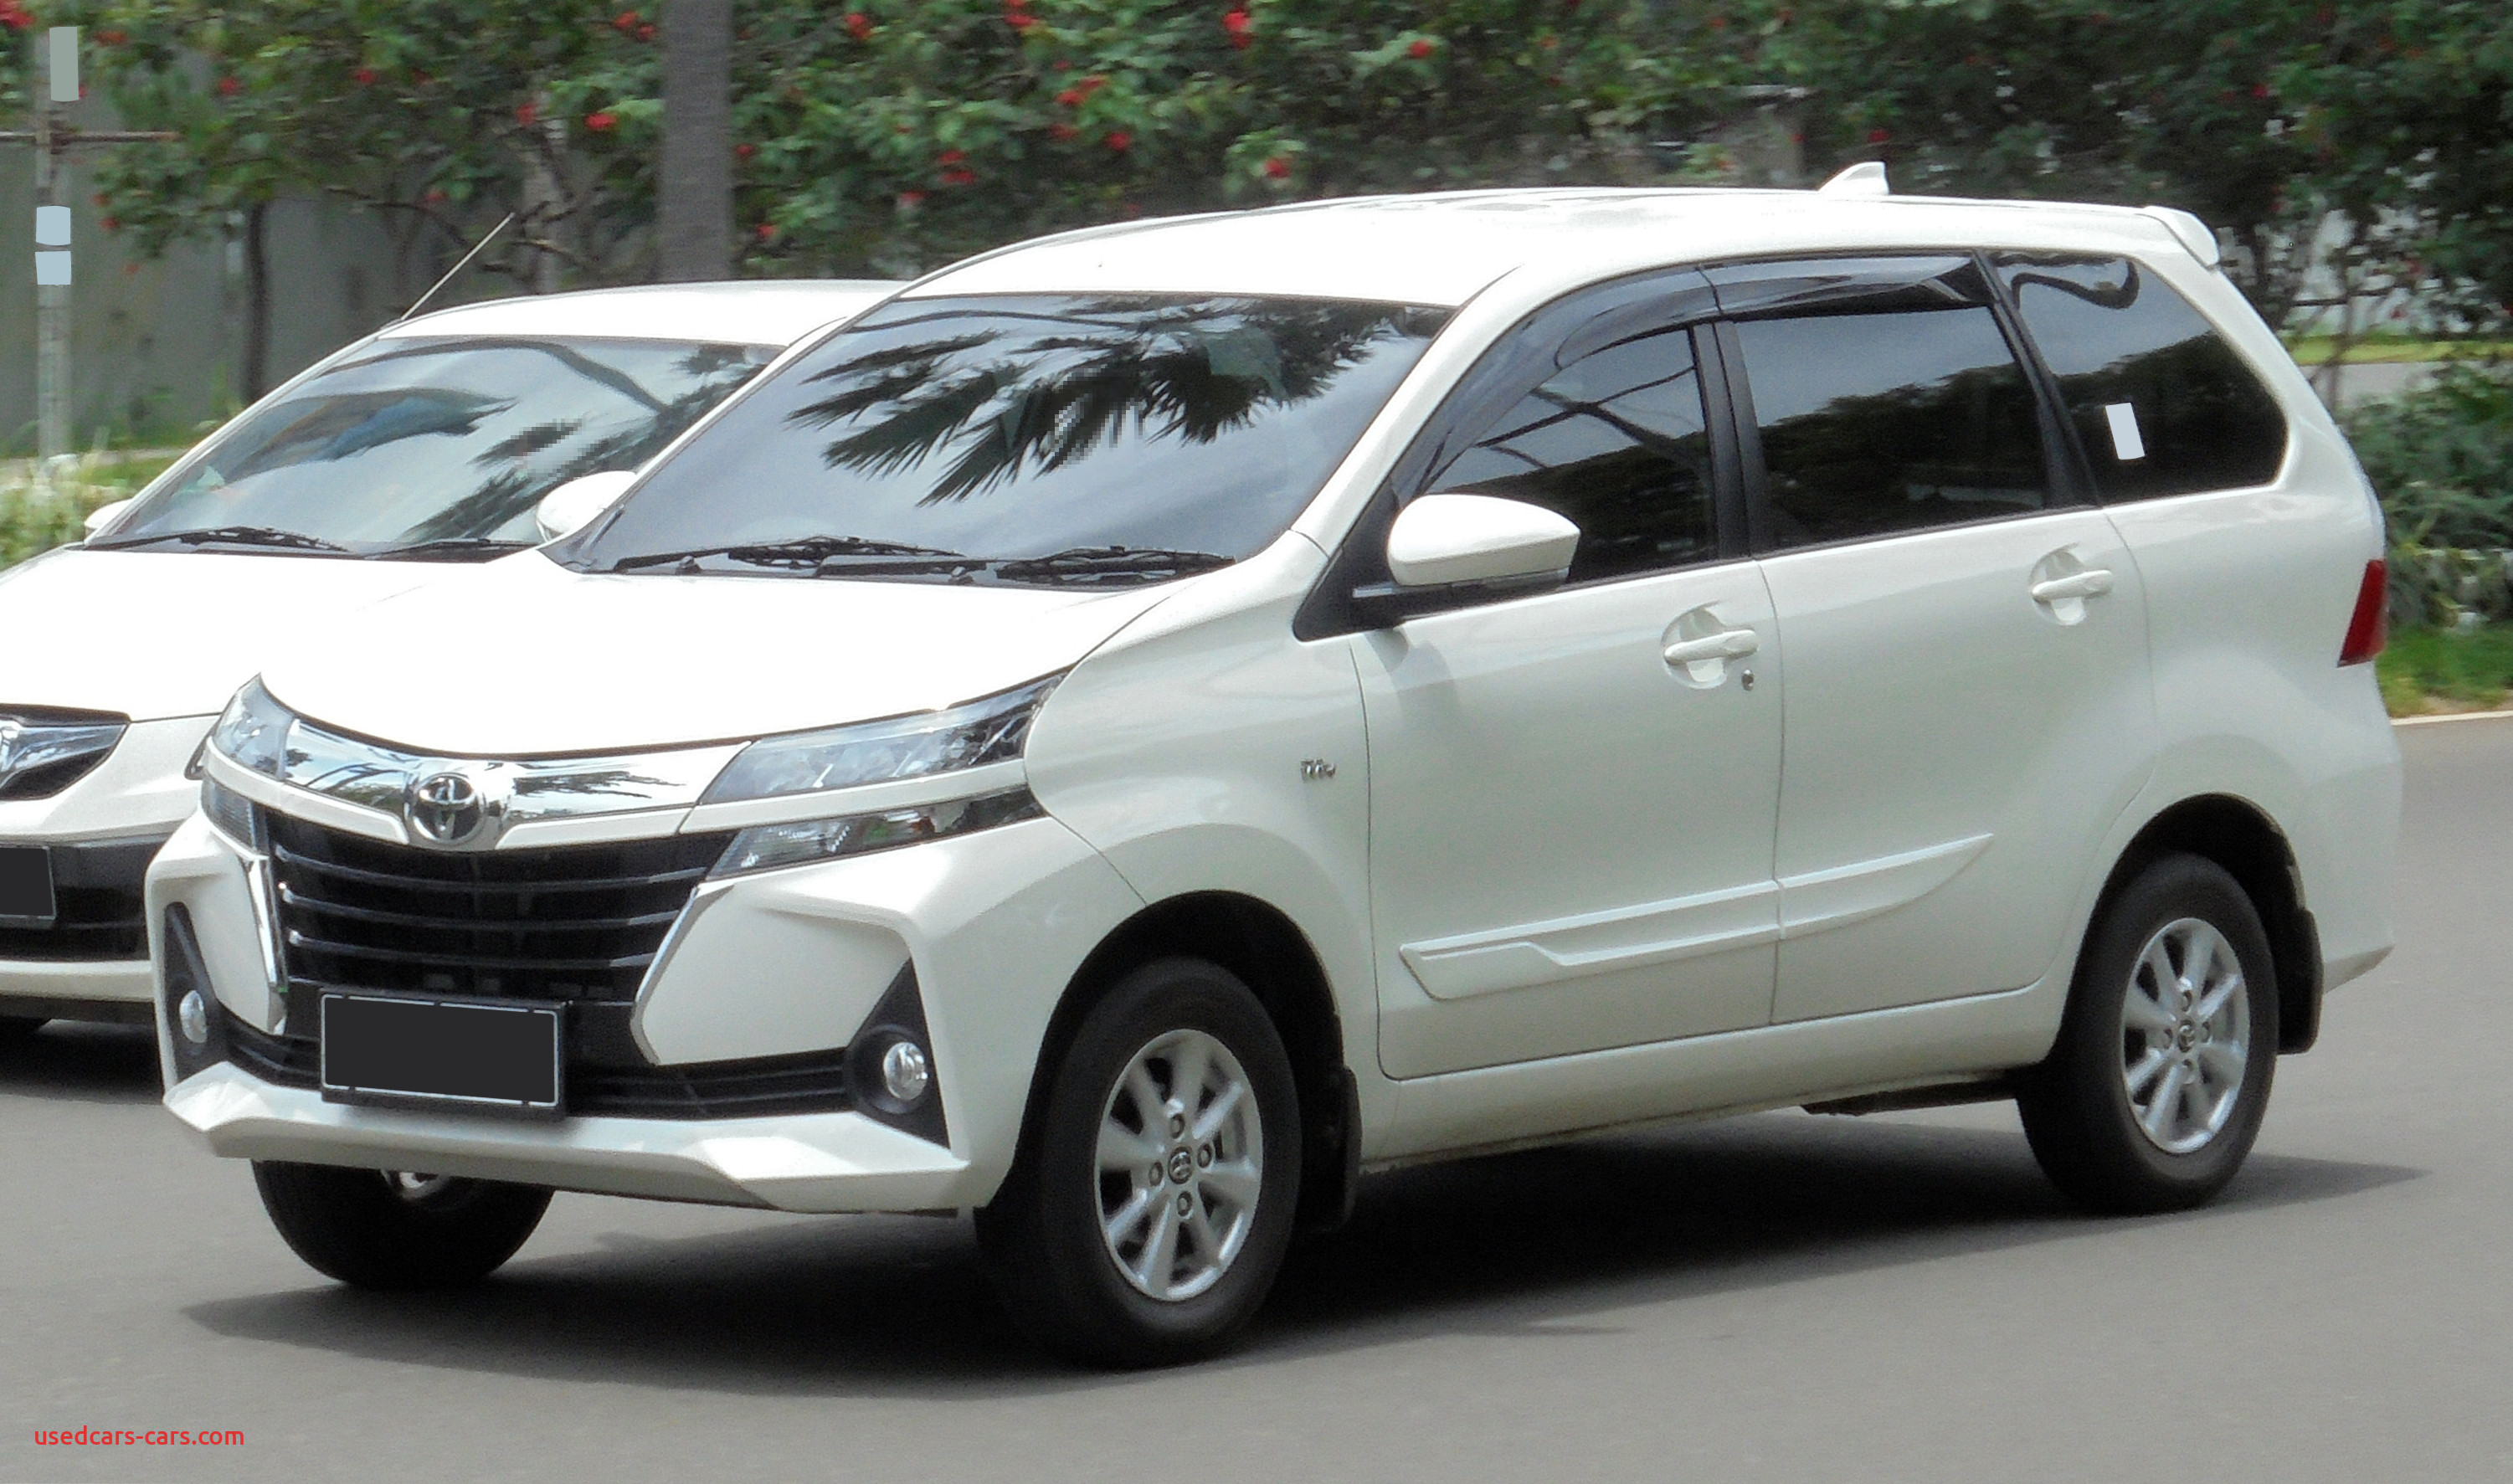 Used Manual Cars Near Me Elegant Toyota Avanza Manual Guide